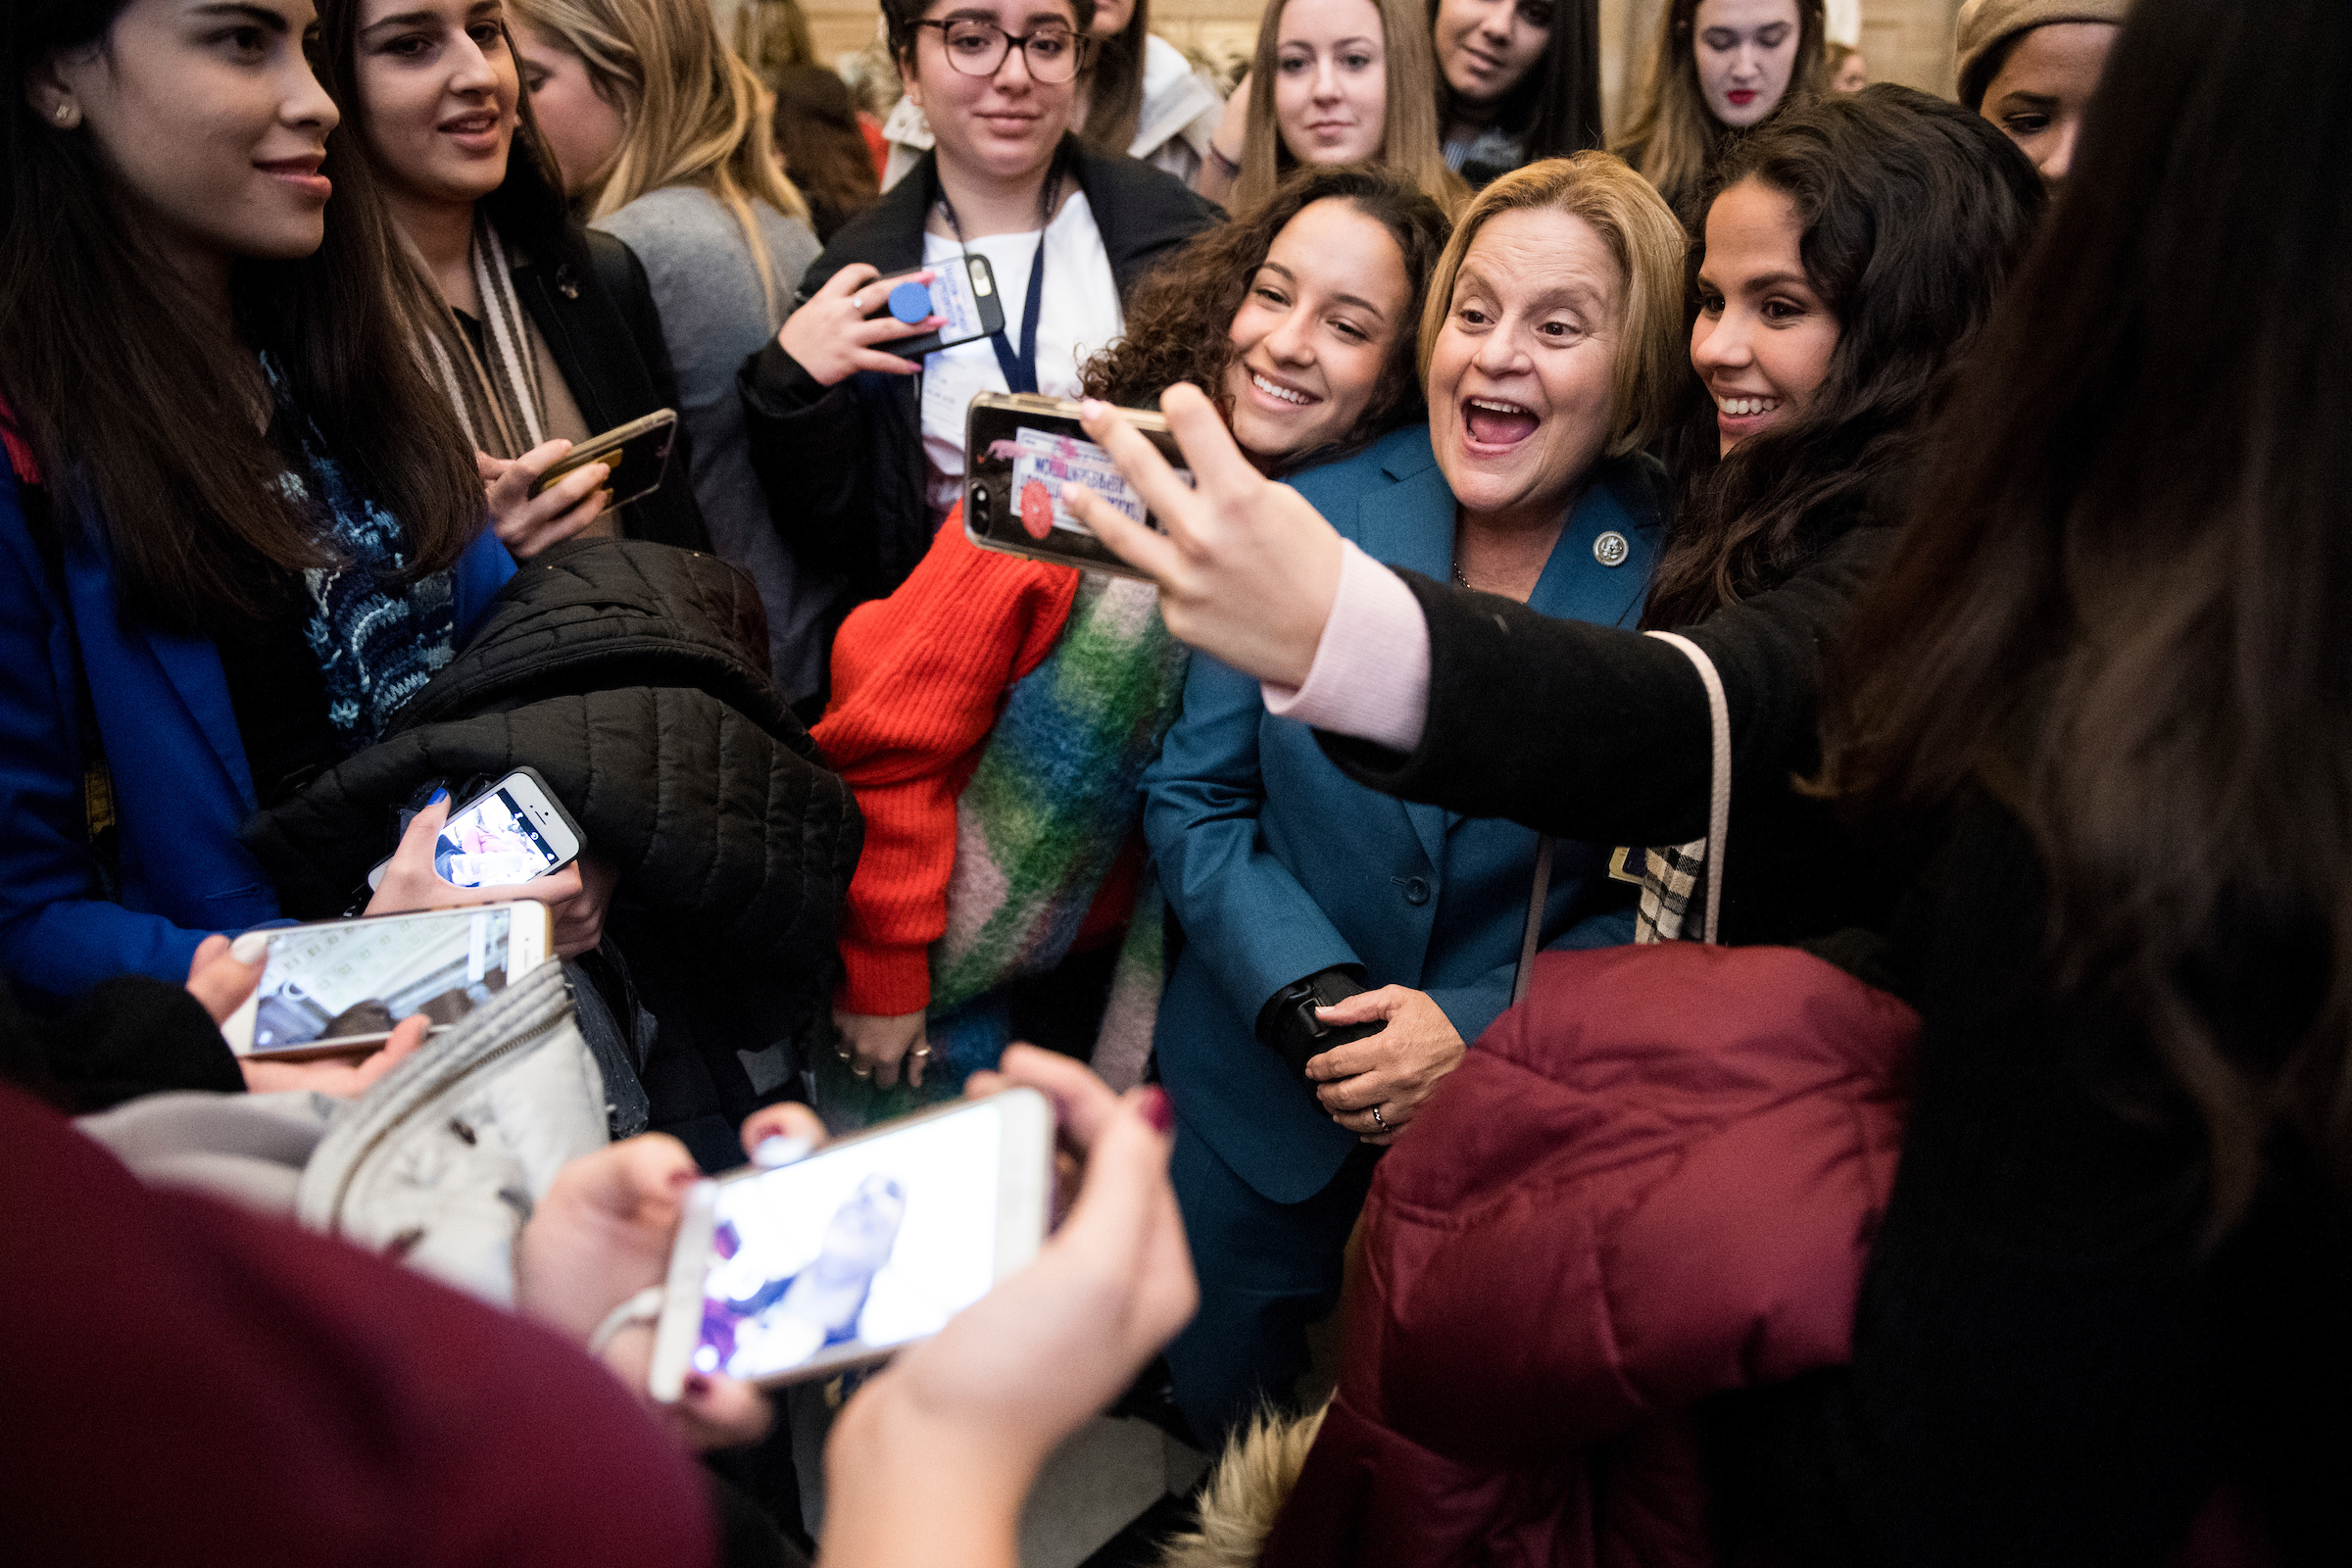 UNITED STATES - FEBRUARY 7: Rep. Ileana Ros-Lehtinen, R-Fla., poses for selfies in Statuary Hall with female students touring the Capitol as part of the Closeup Foundation program on Wednesday, Feb. 7, 2018. Rep. Ileana Ros-Lehtinen, Rep. Carlos Curbelo and Rep. Debbie Wasserman Schultz also spoke to the group in Statuary Hall. (Photo By Bill Clark/CQ Roll Call)